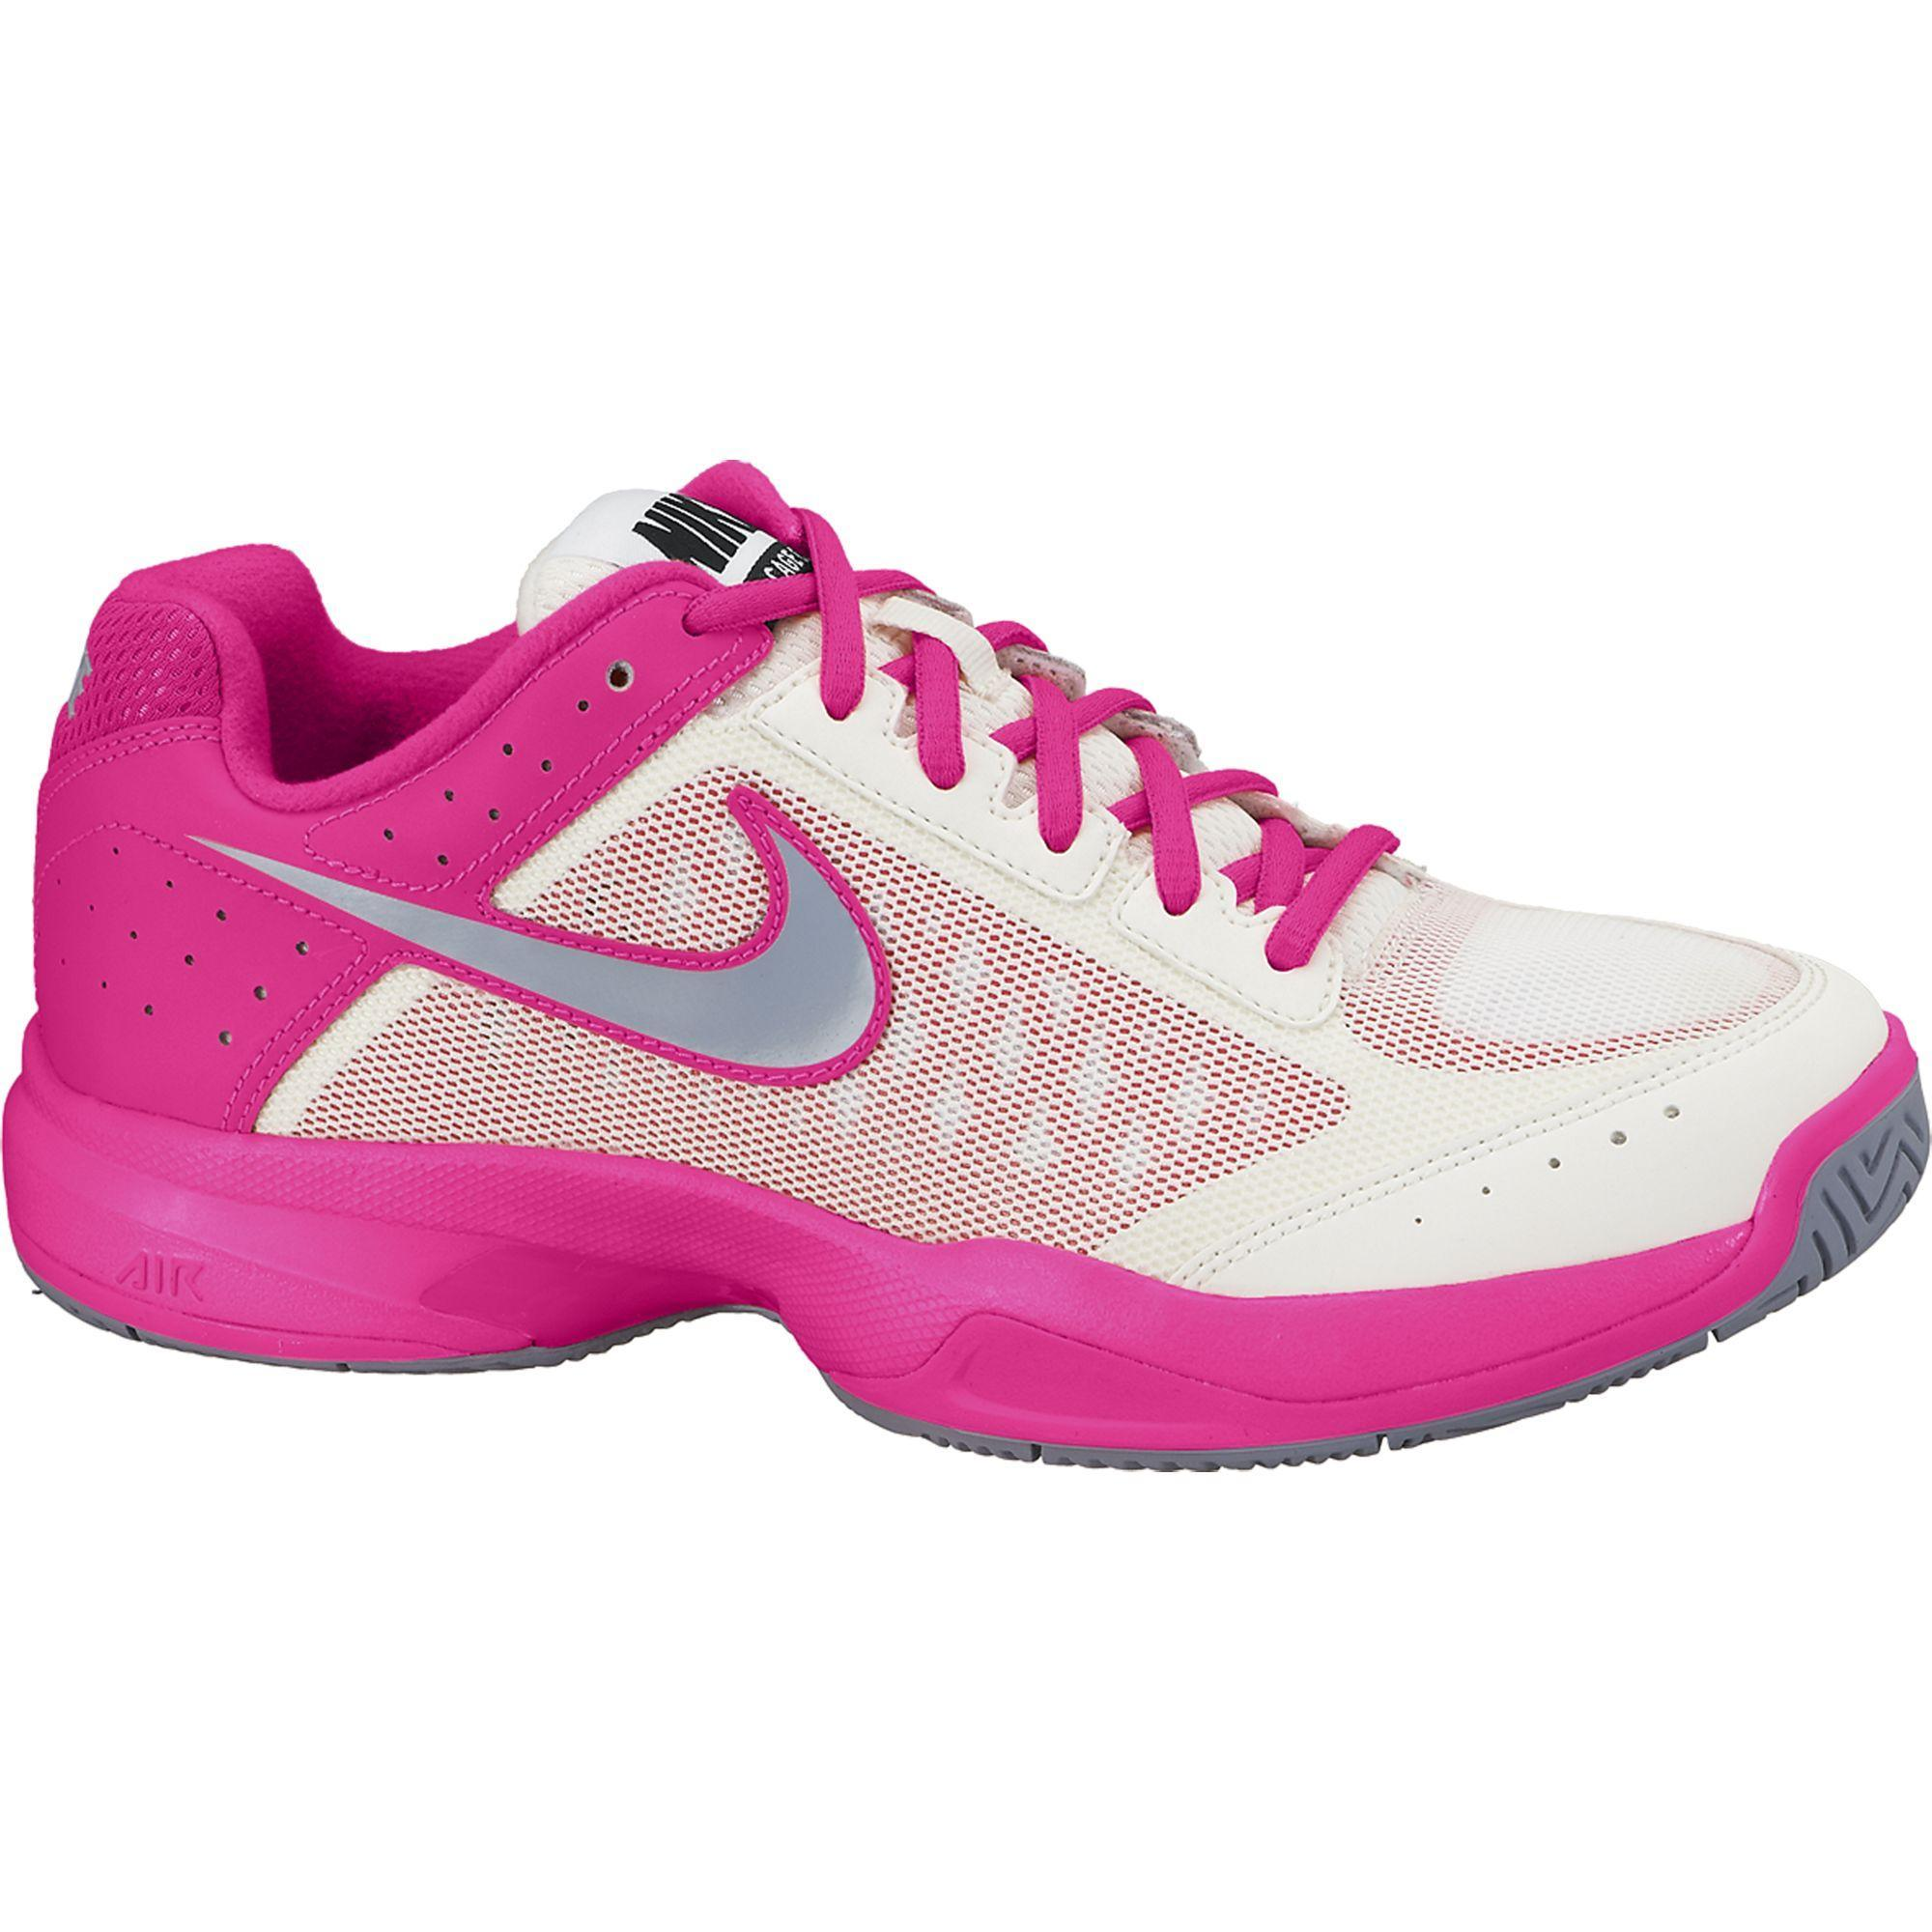 Nike Womens Air Cage Court Tennis Shoes